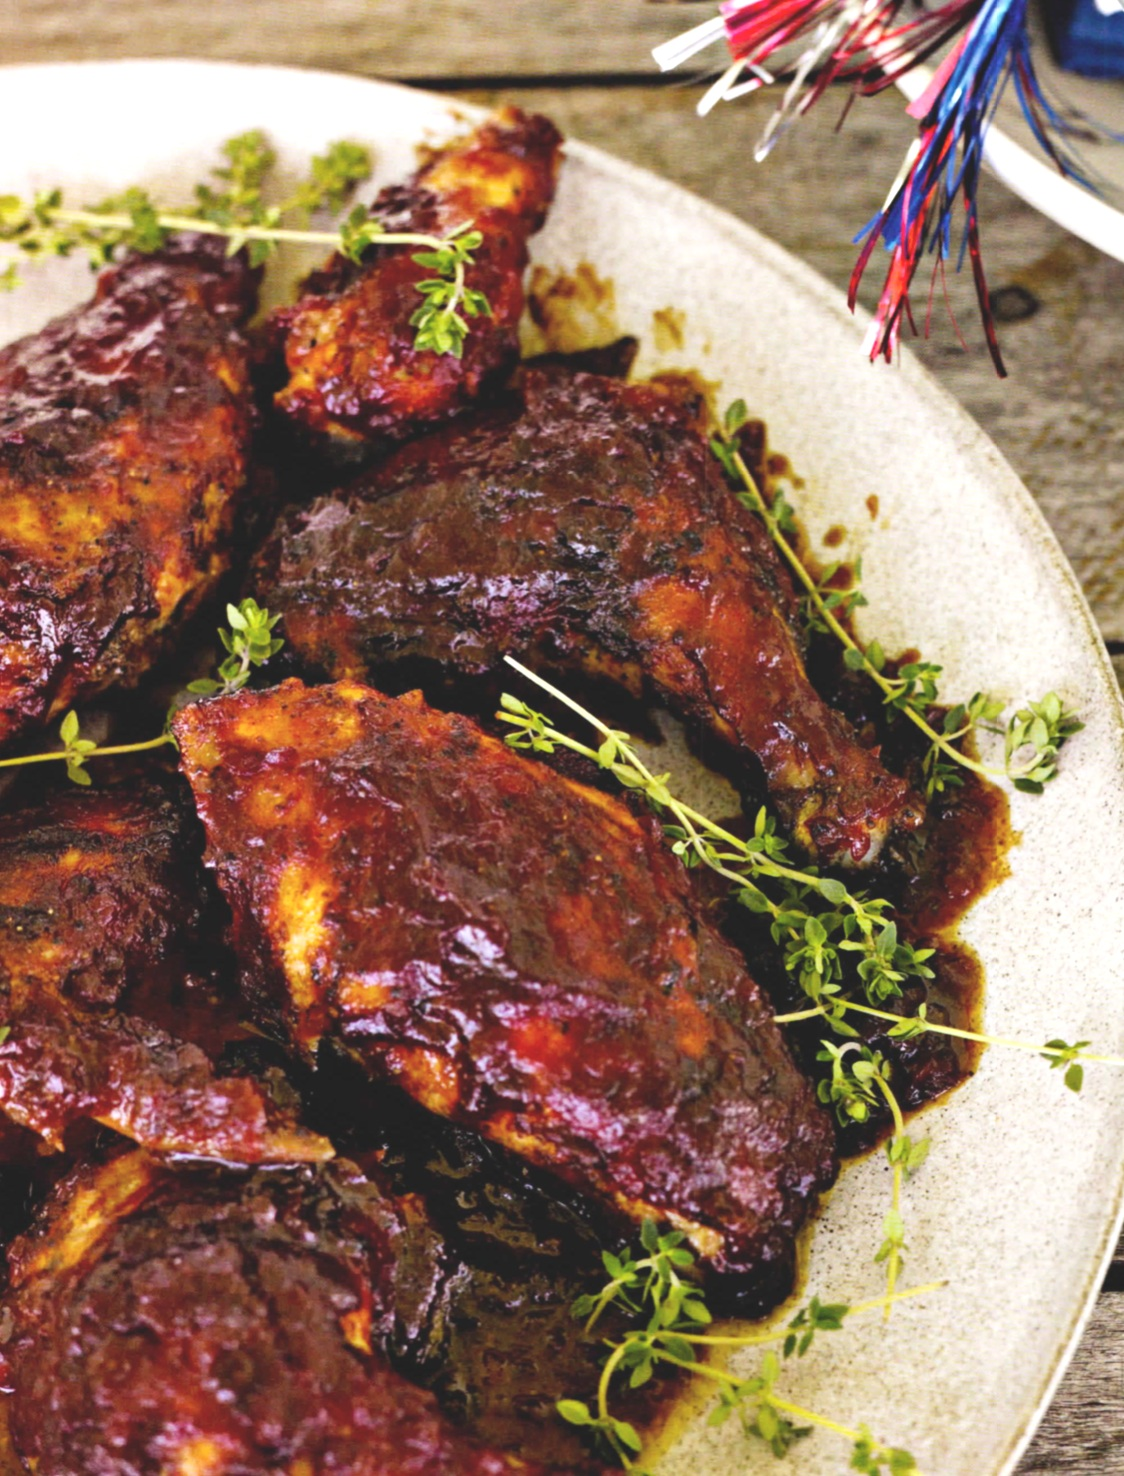 8 TO 10 SERVINGS     PREP TIME : 15 MINUTES   INACTIVE PREP TIME : 1 TO 2 HOURS   COOK TIME : 10 MINUTES ON THE GRILL AND 45 MINUTES IN THE OVEN